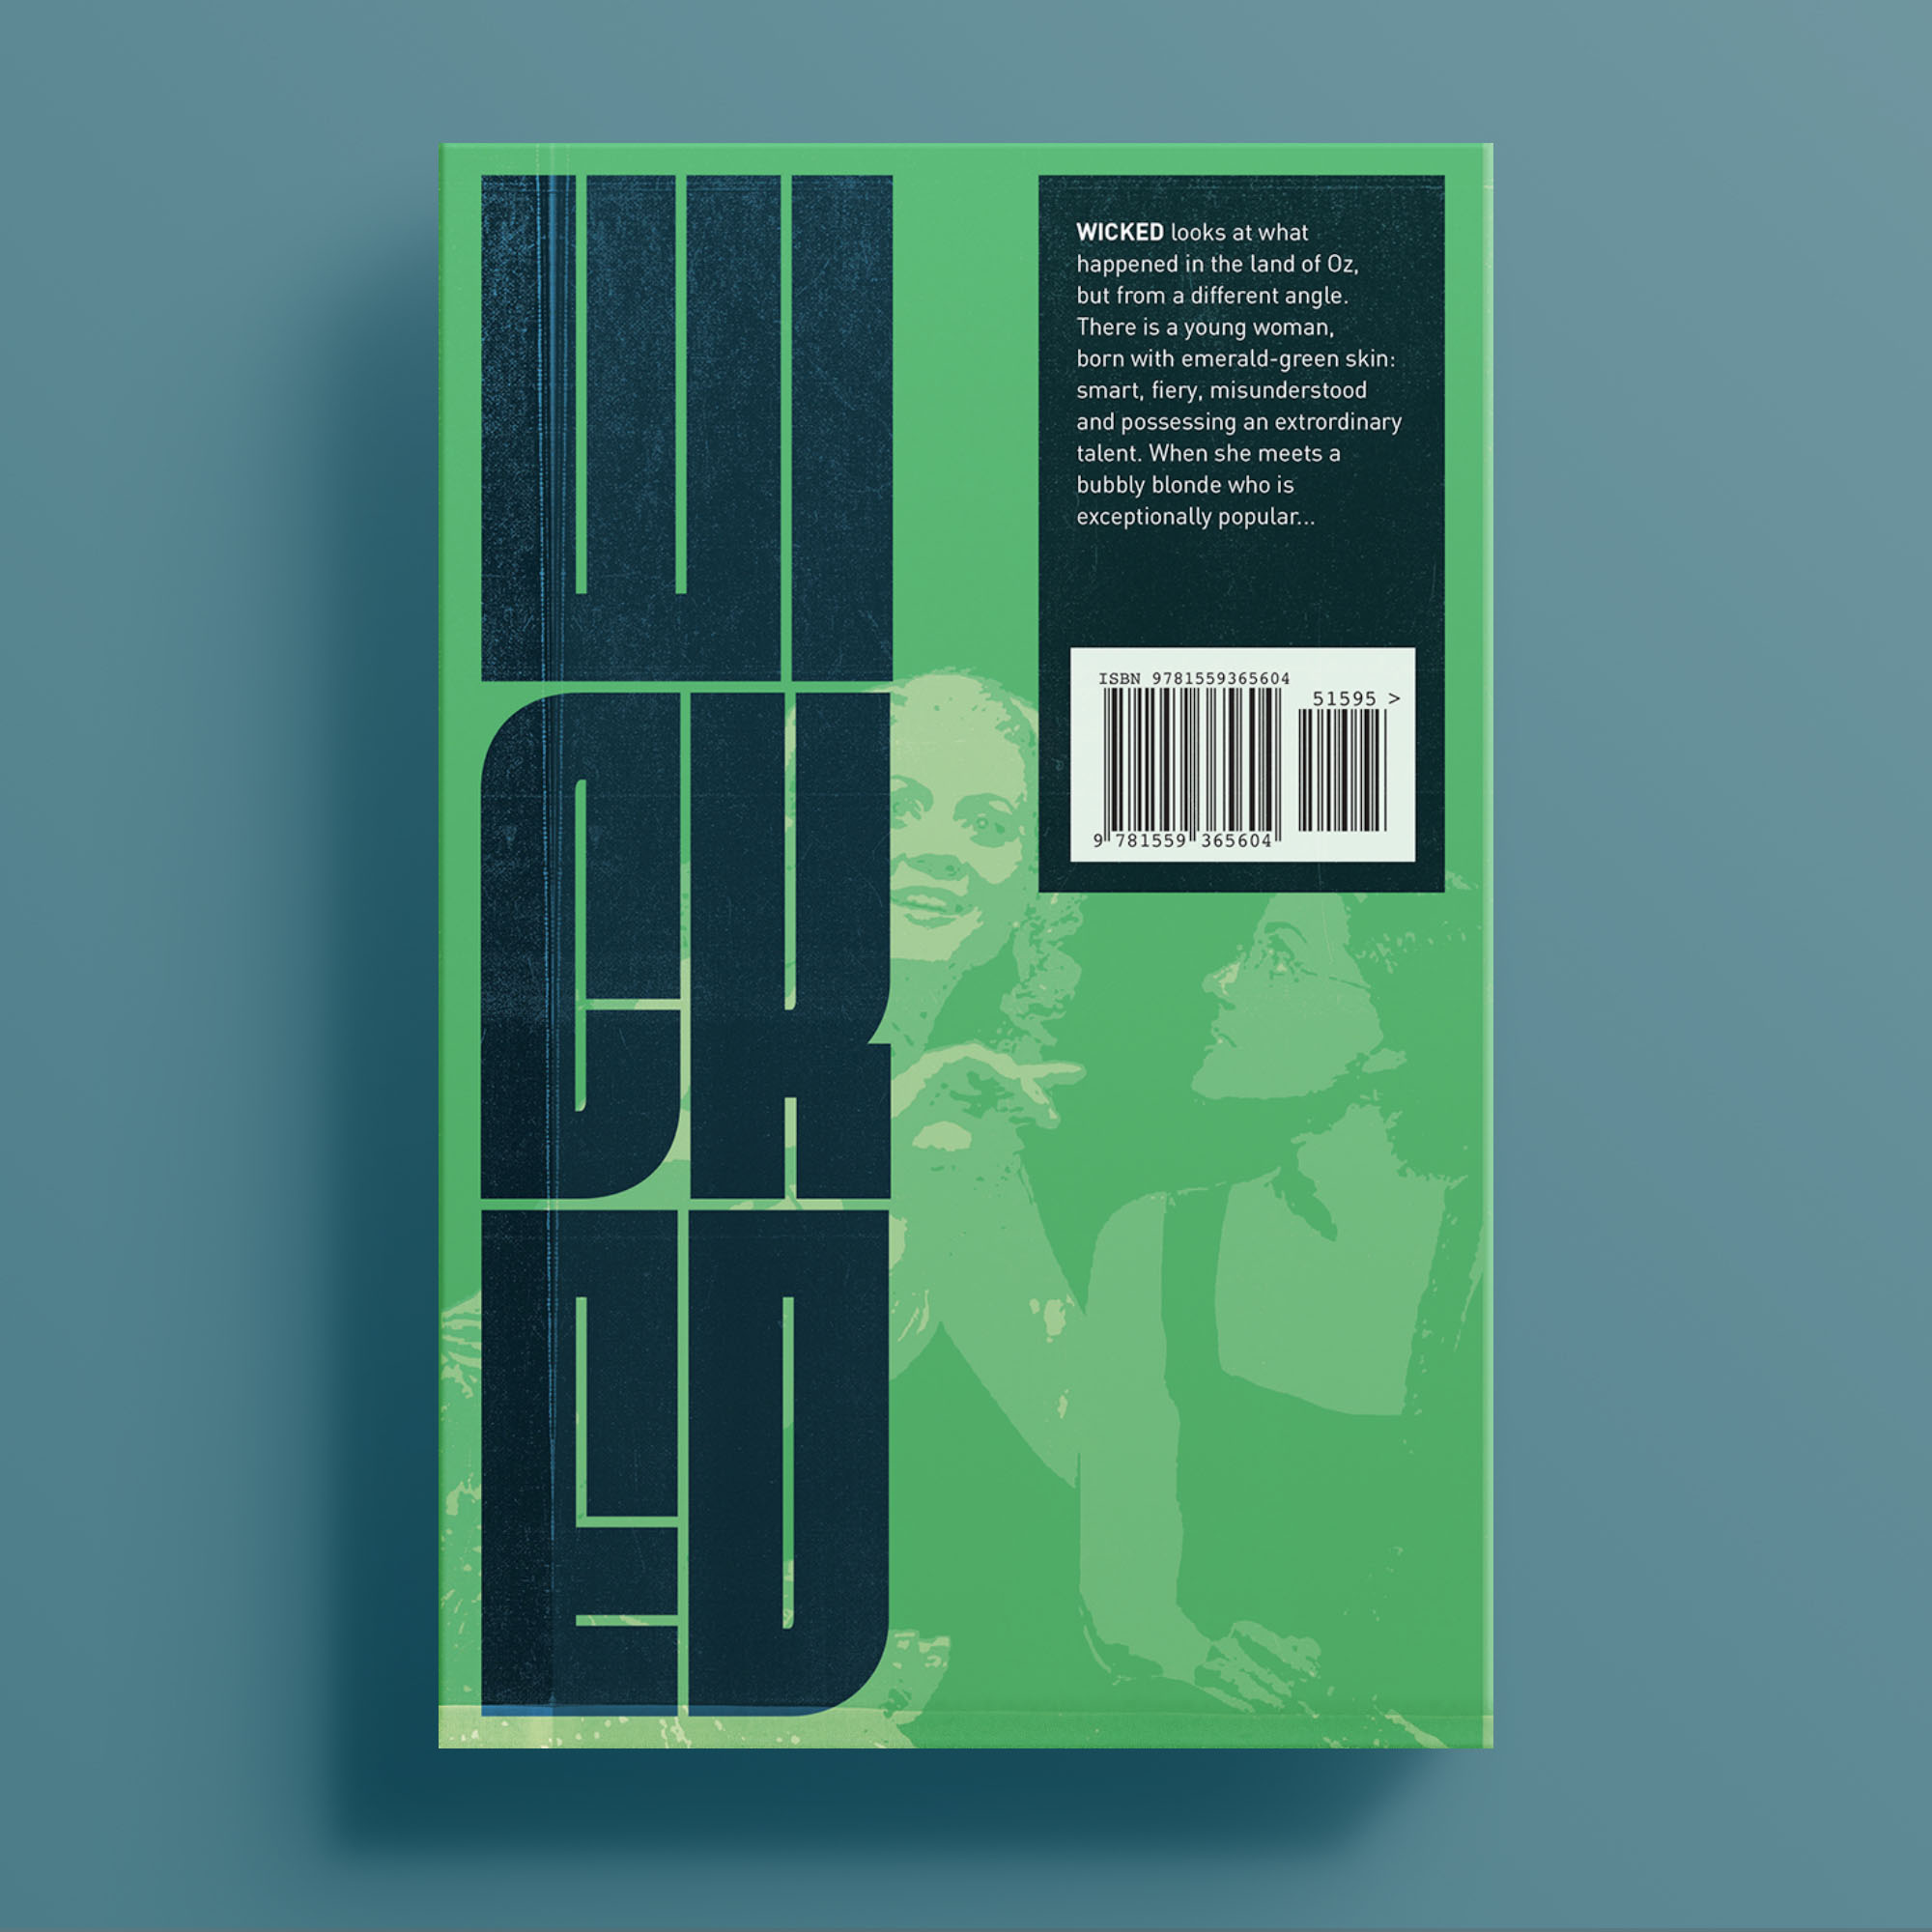 Wicked, back cover